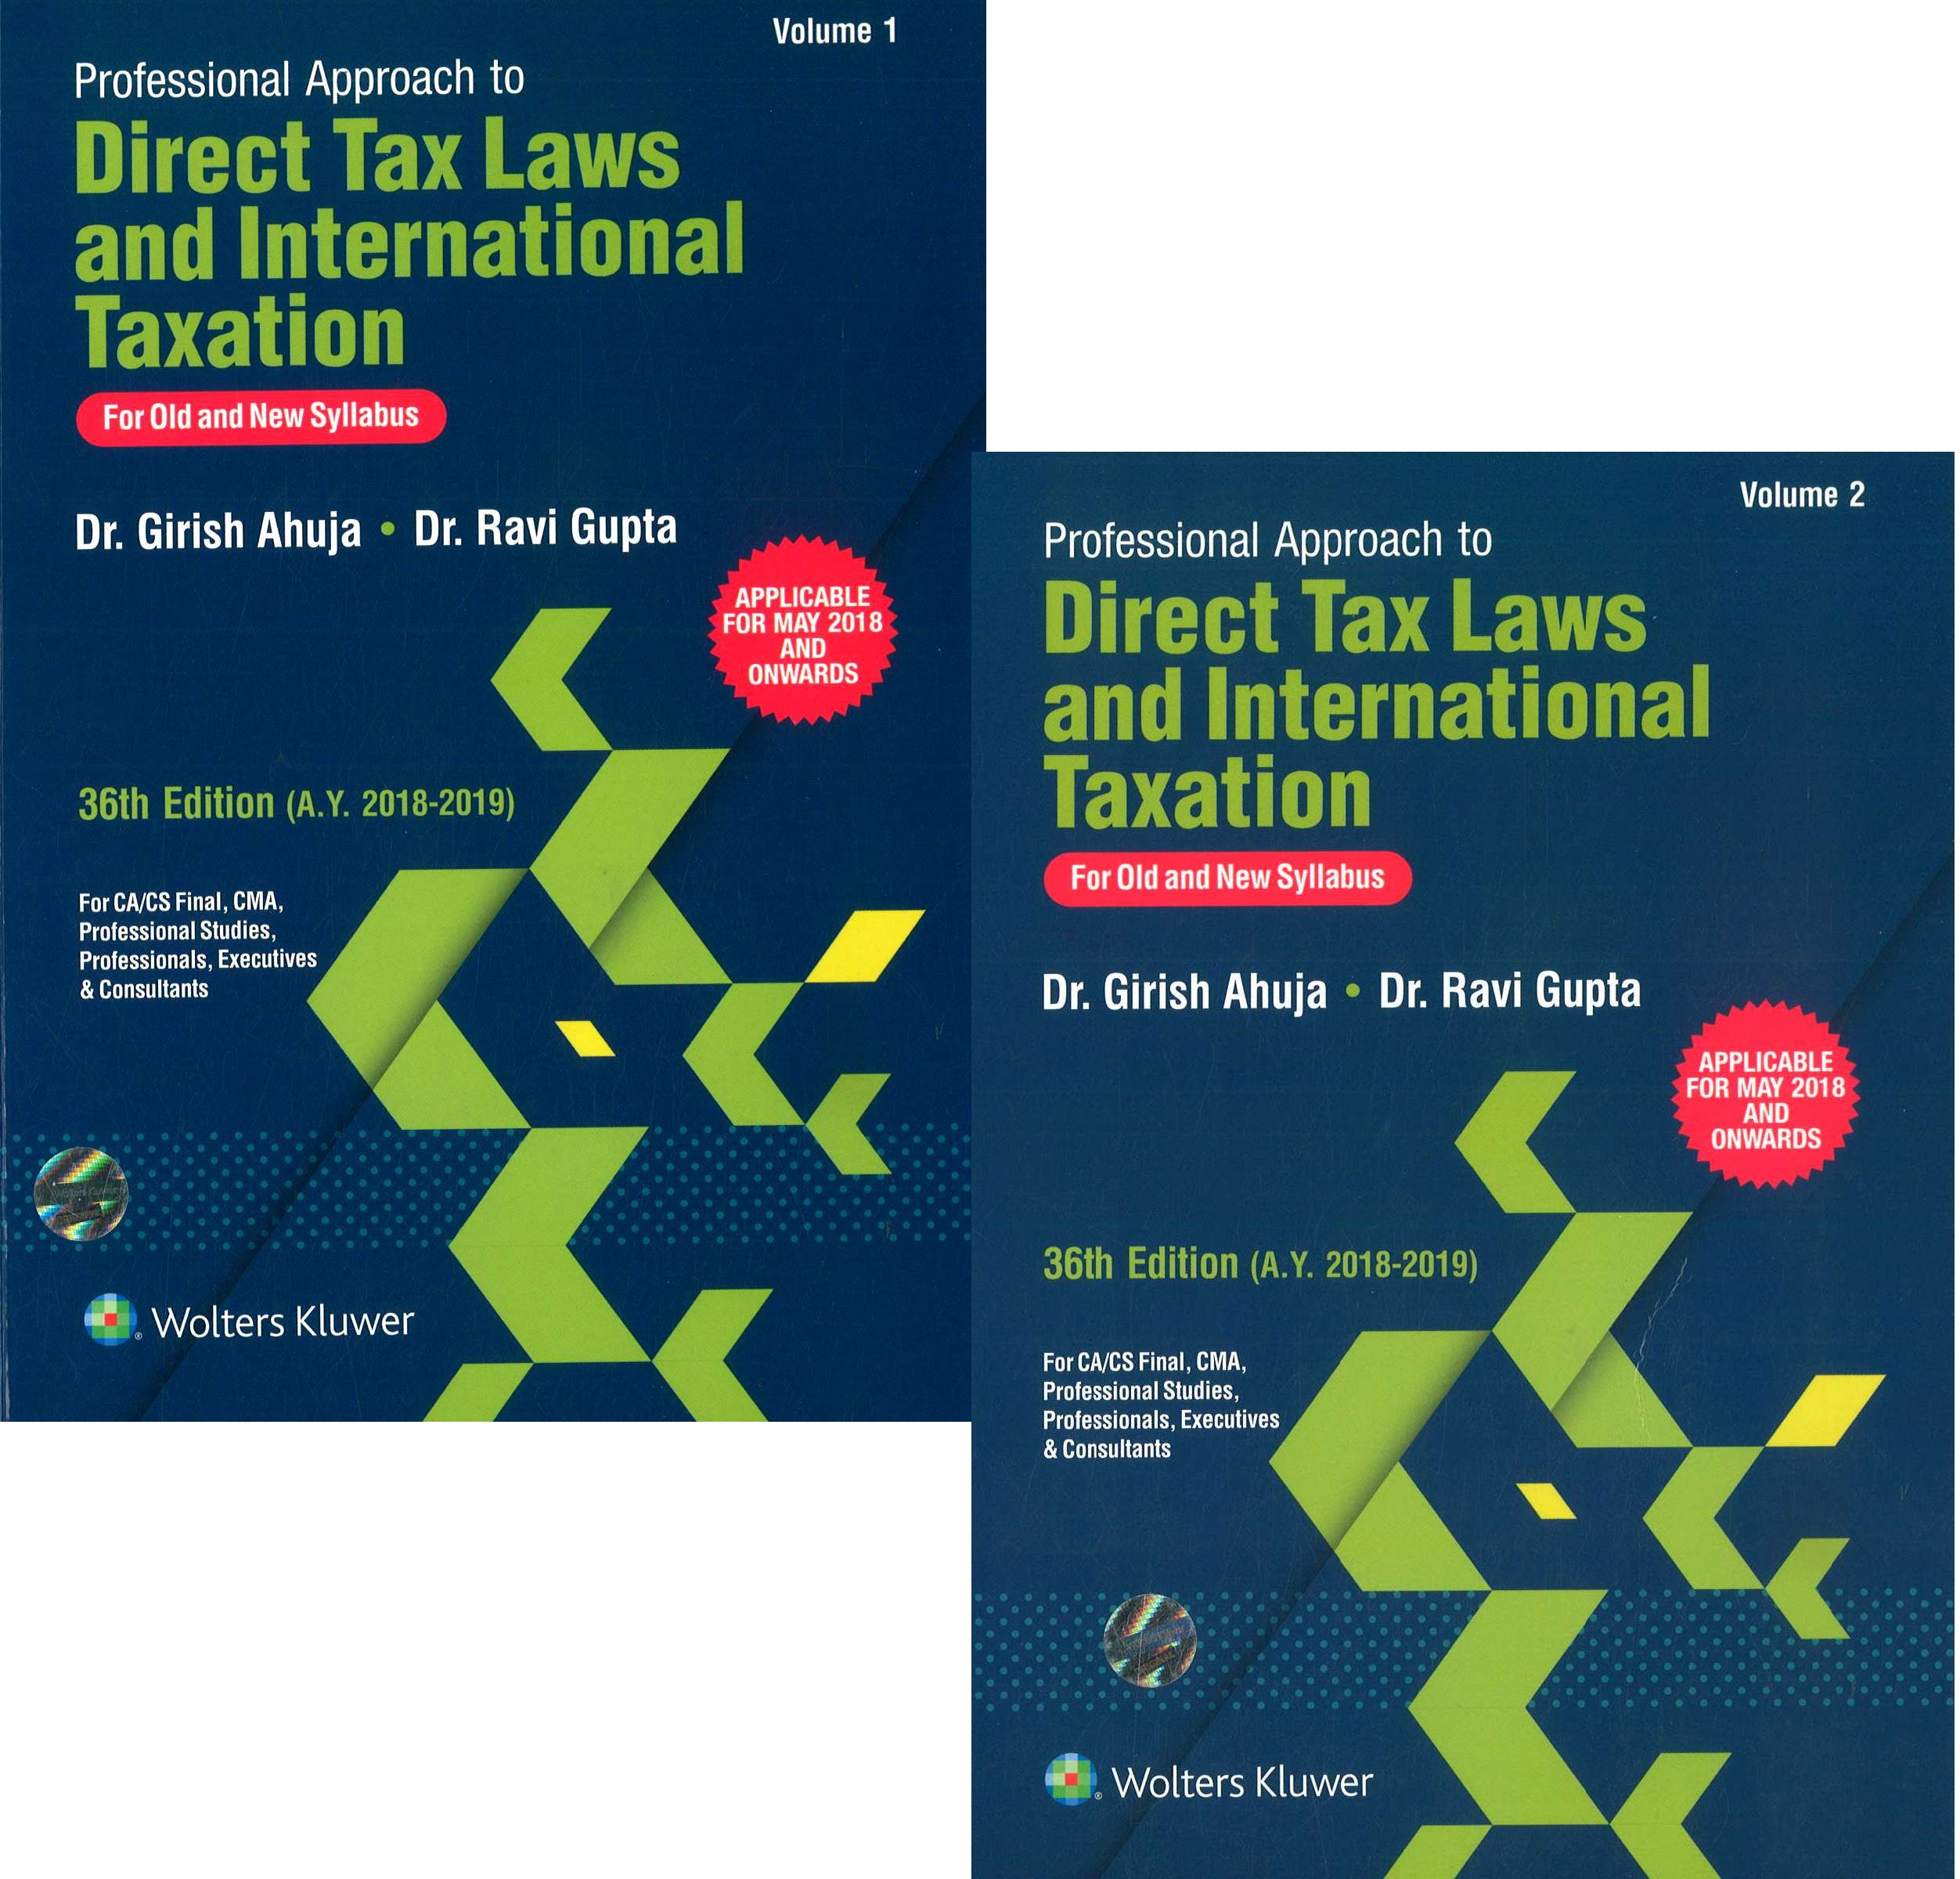 CCH Professional Approach to Direct Taxes Law & Practice for Old and New Syllabus for CA/CS/CMA Final By Dr Girish Ahuja Dr Ravi Gupta Applicable for May 2018 Exam 36th Edition December 2017